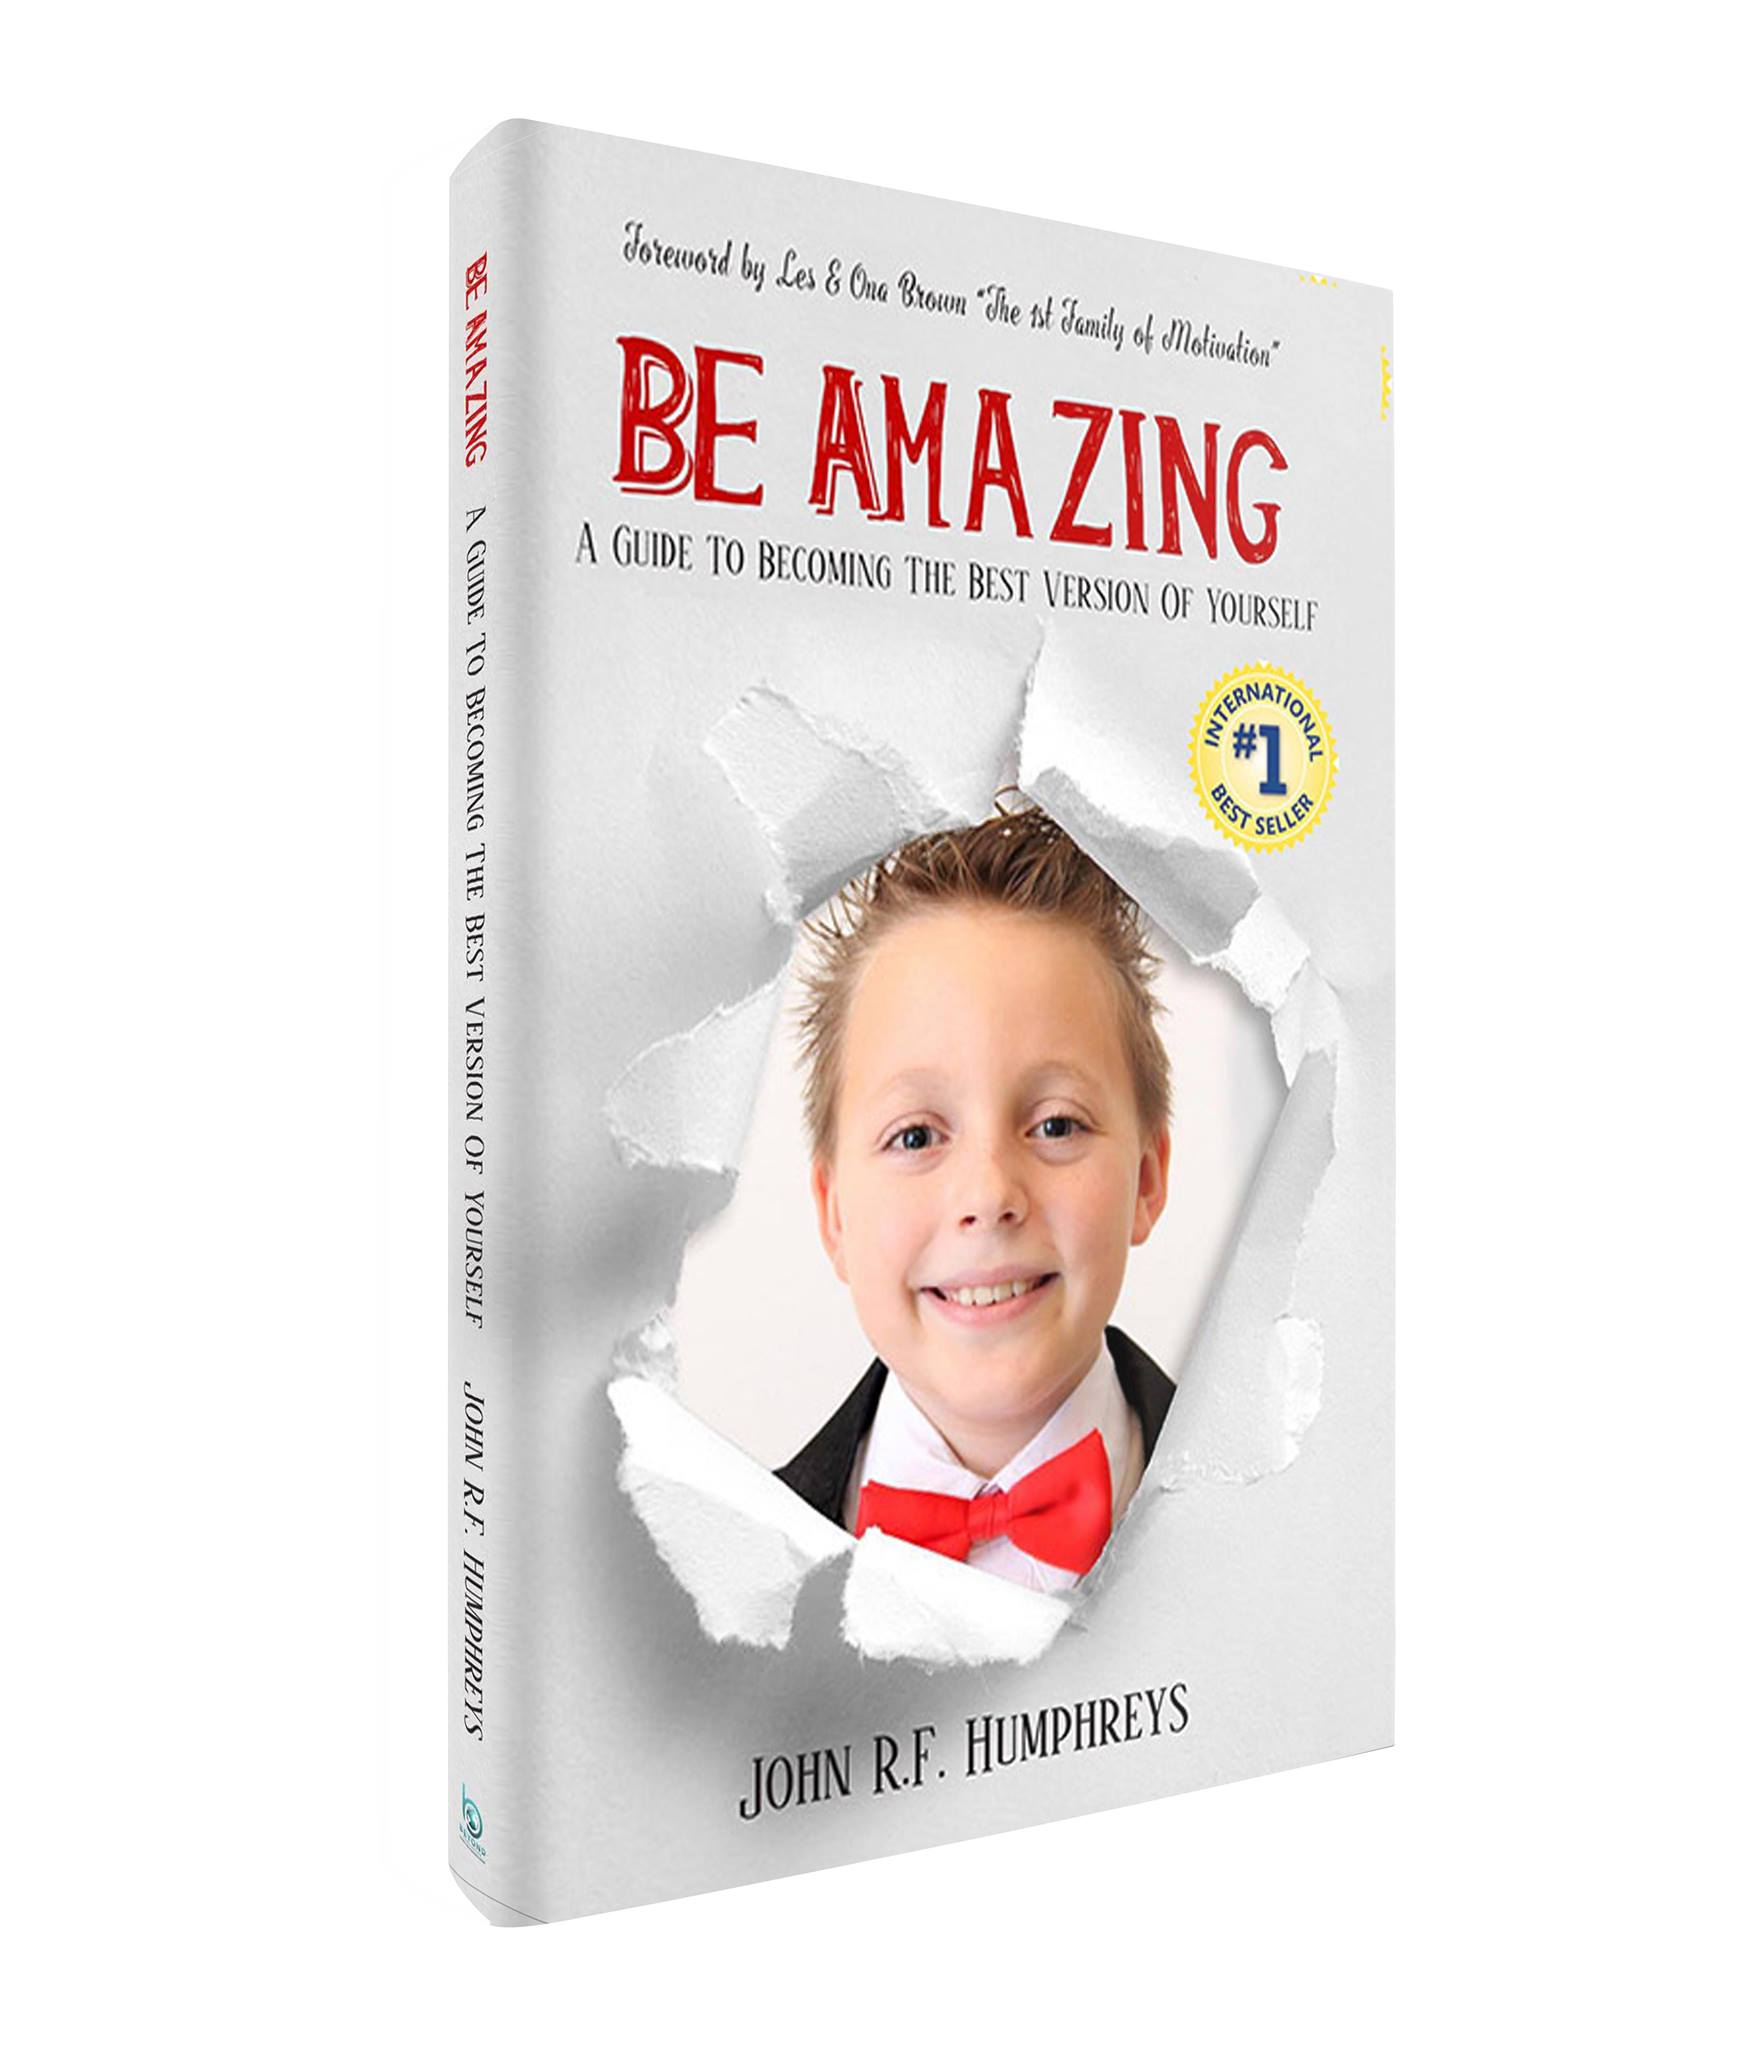 World's Youngest Motivational Speaker Gives Back With BE AMAZING